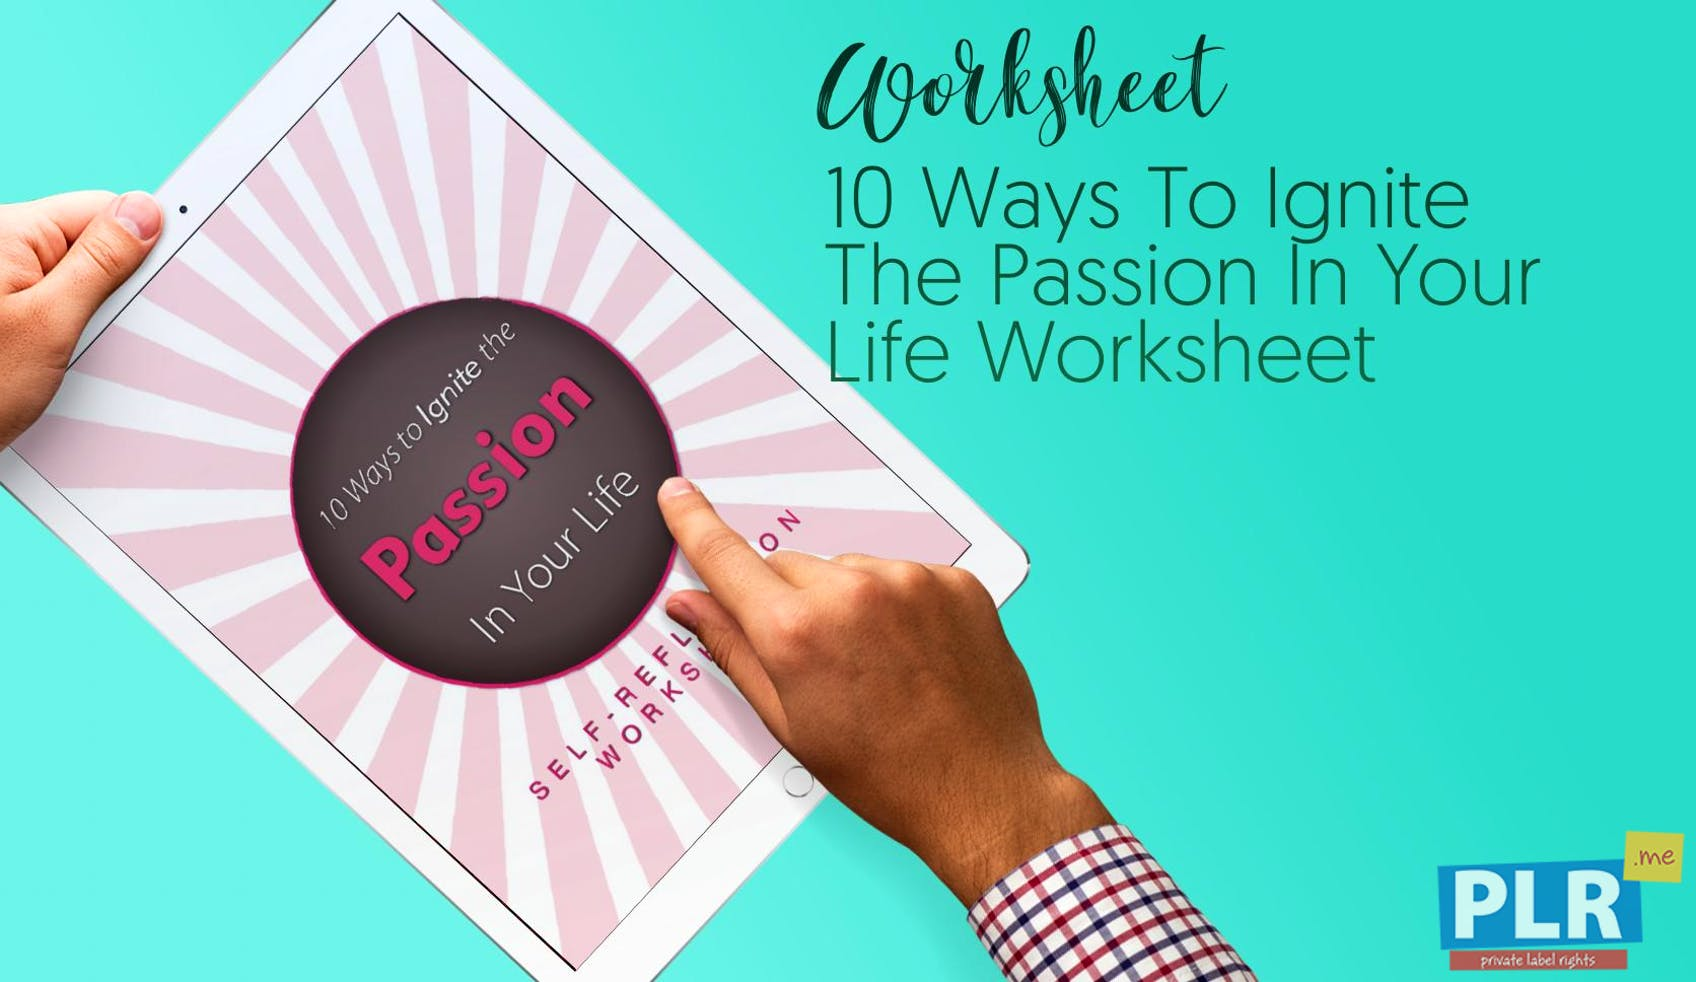 PLR Worksheets - 10 Ways To Ignite The Passion In Your Life ...